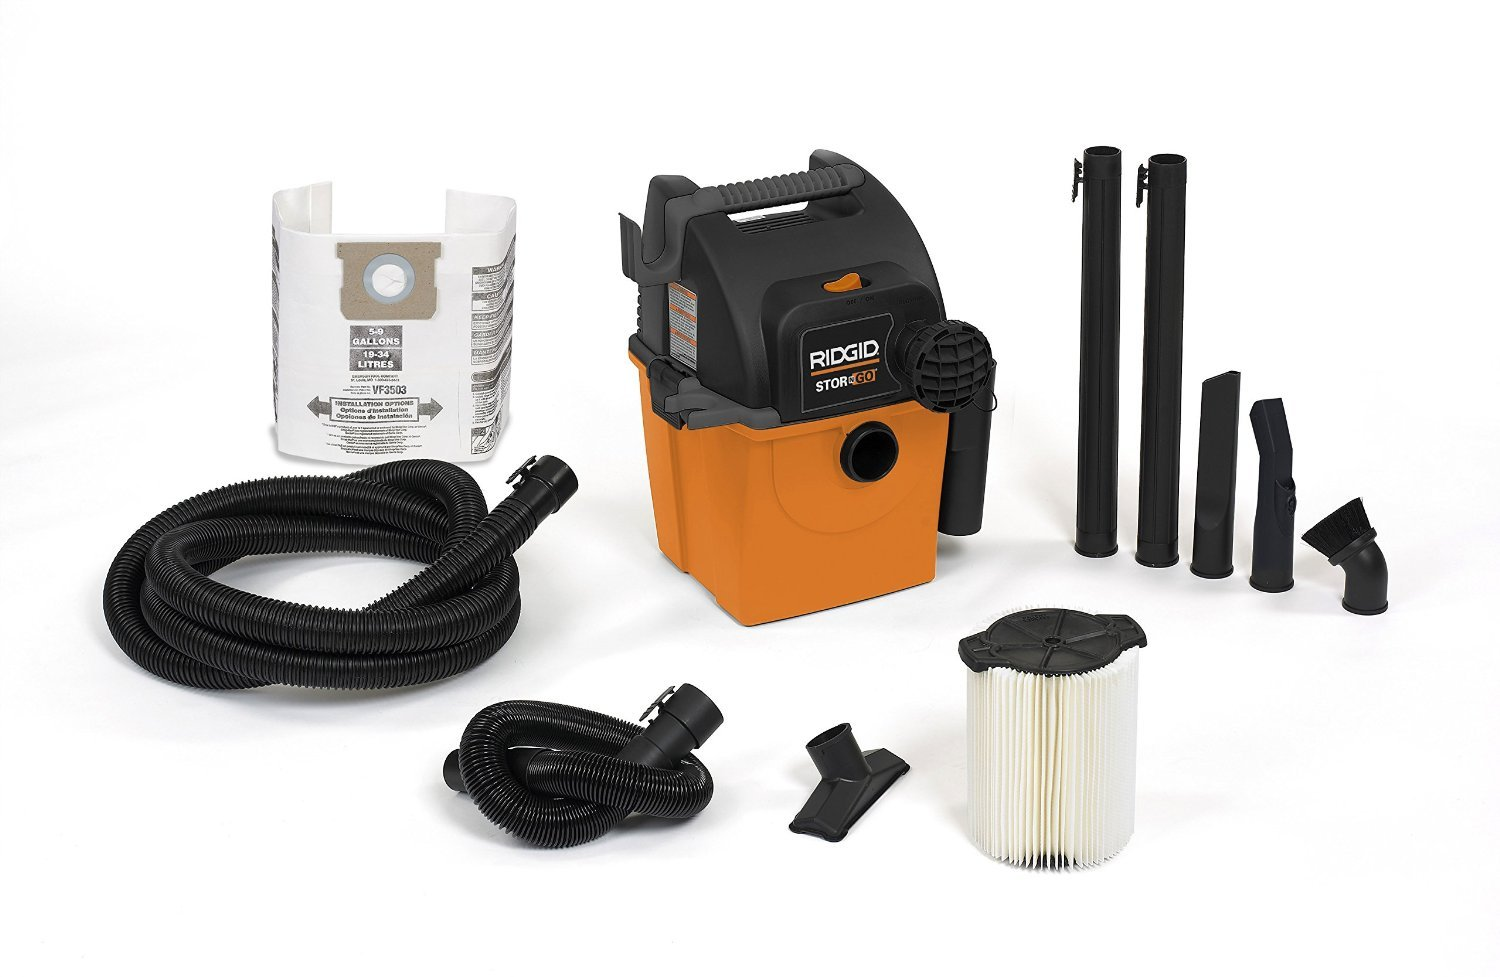 RIDGID Wet Dry Vacs VAC5000 Portable Wall Mount Wet Dry Vacuum Cleaner for Shop or Garage, 5-Gallon, 5.0 Peak Horsepower, Small Shop Vacuum Cleaner for Garage or Home by Ridgid